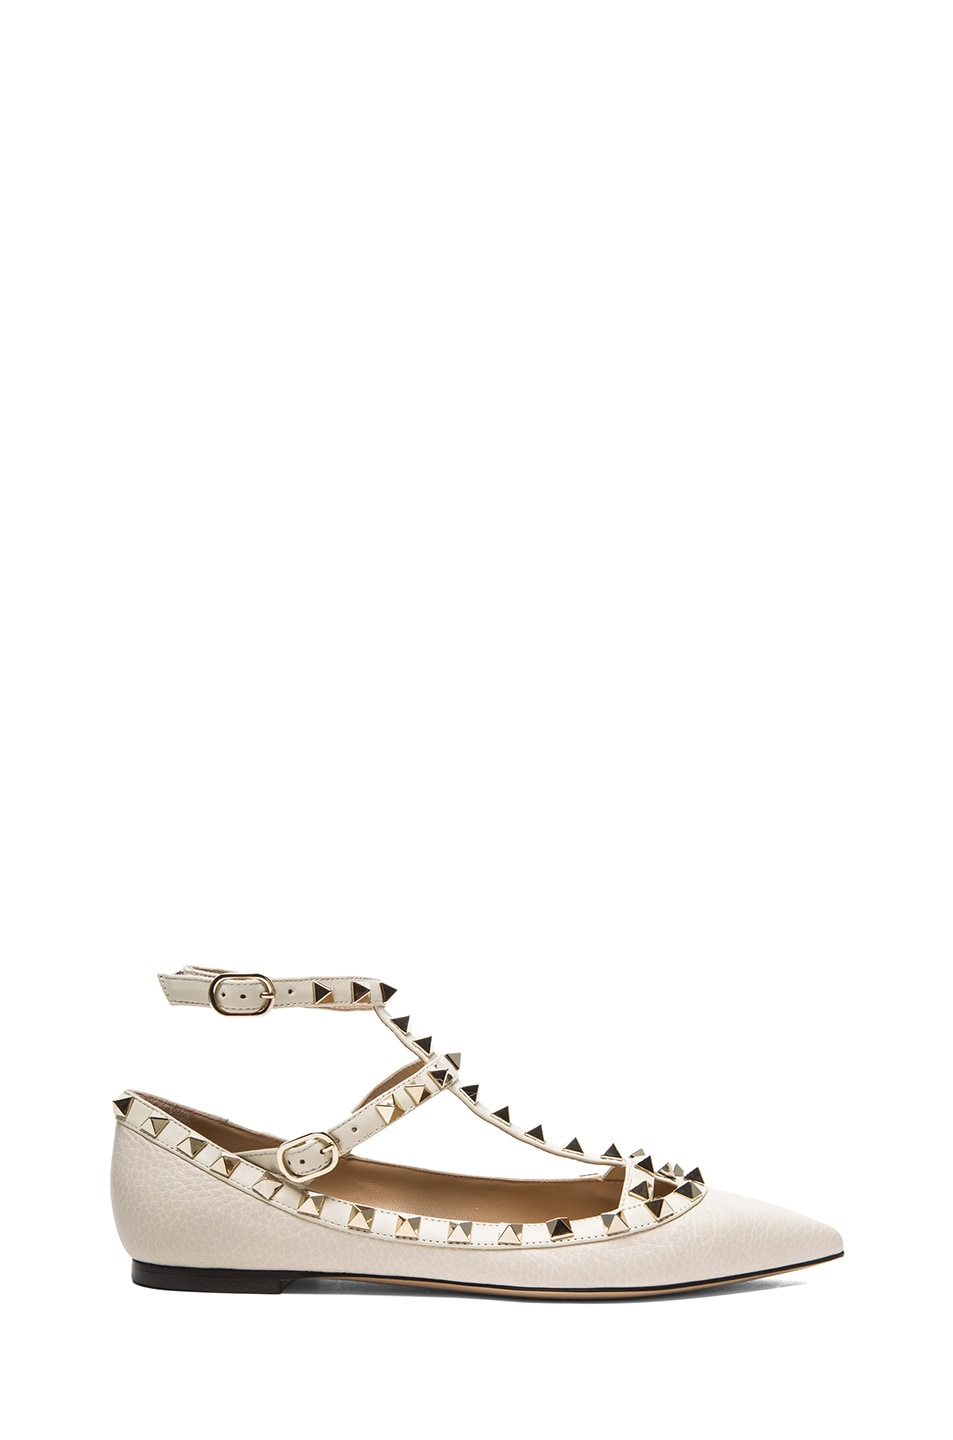 Image 1 of Valentino Rockstud Leather Cage Flats in Light Ivory